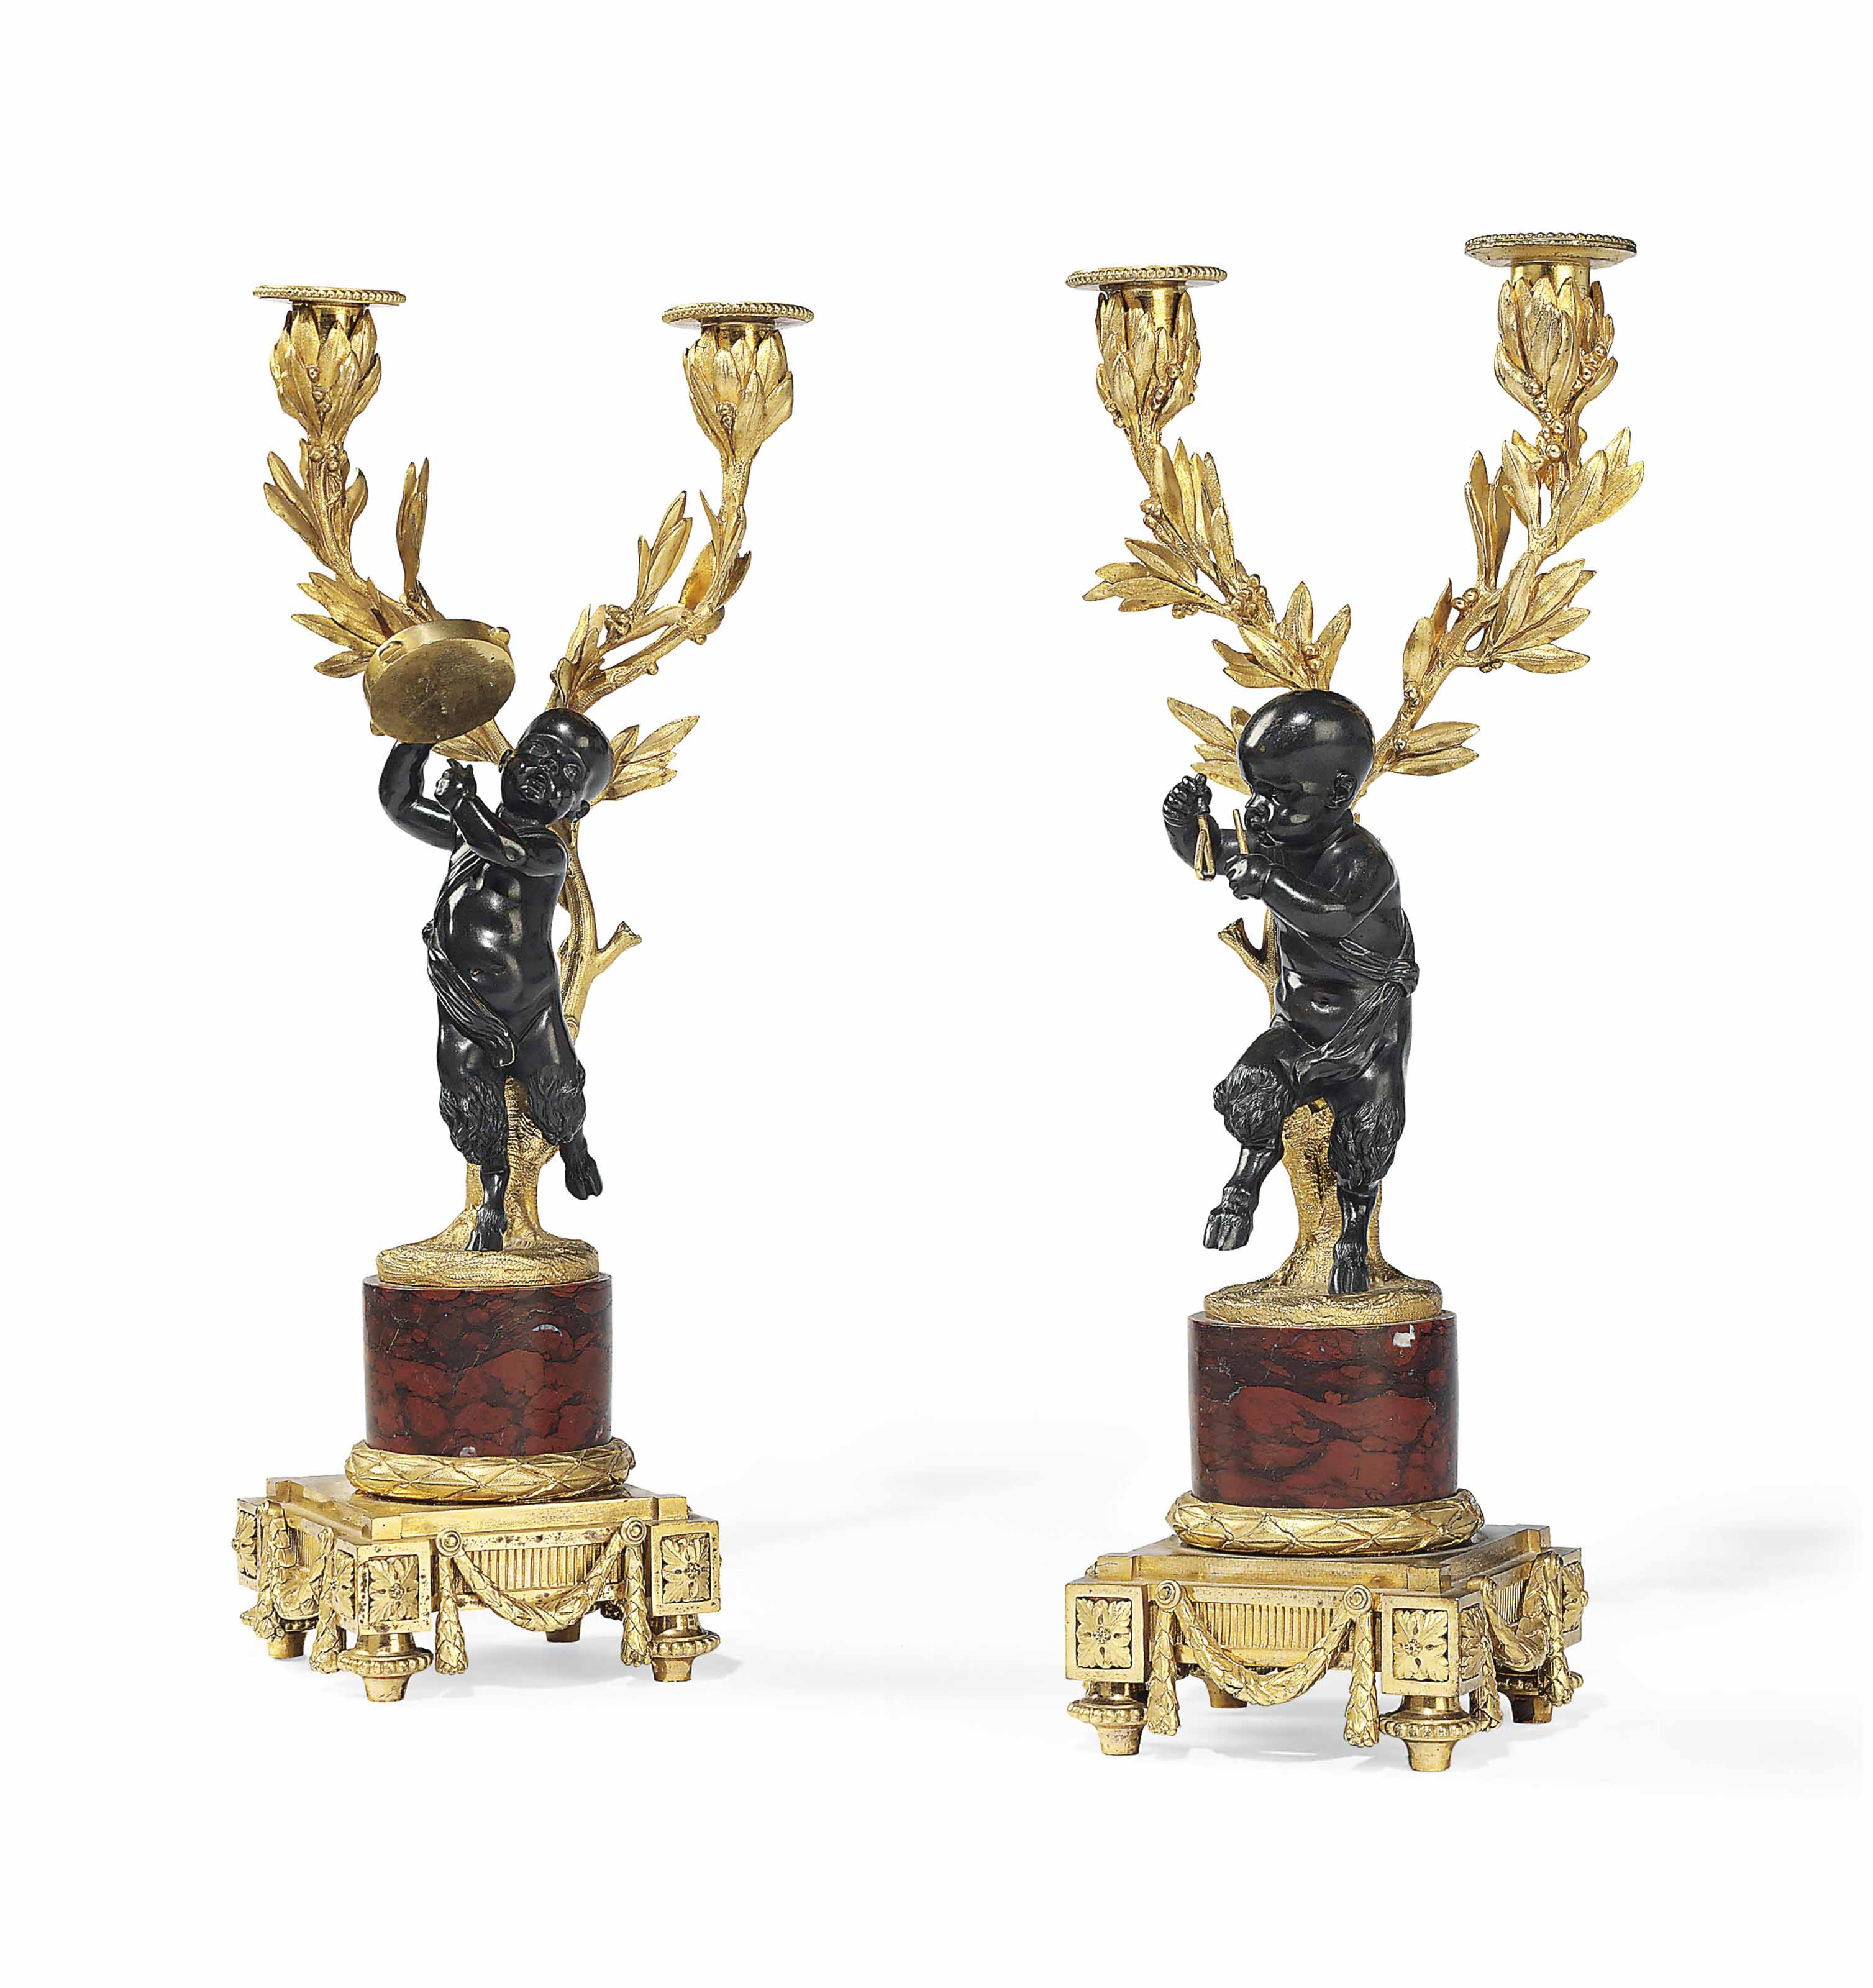 A PAIR OF FRENCH ORMOLU, PATINATED BRONZE AND MARBLE TWIN-LIGHT FIGURAL CANDELABRA